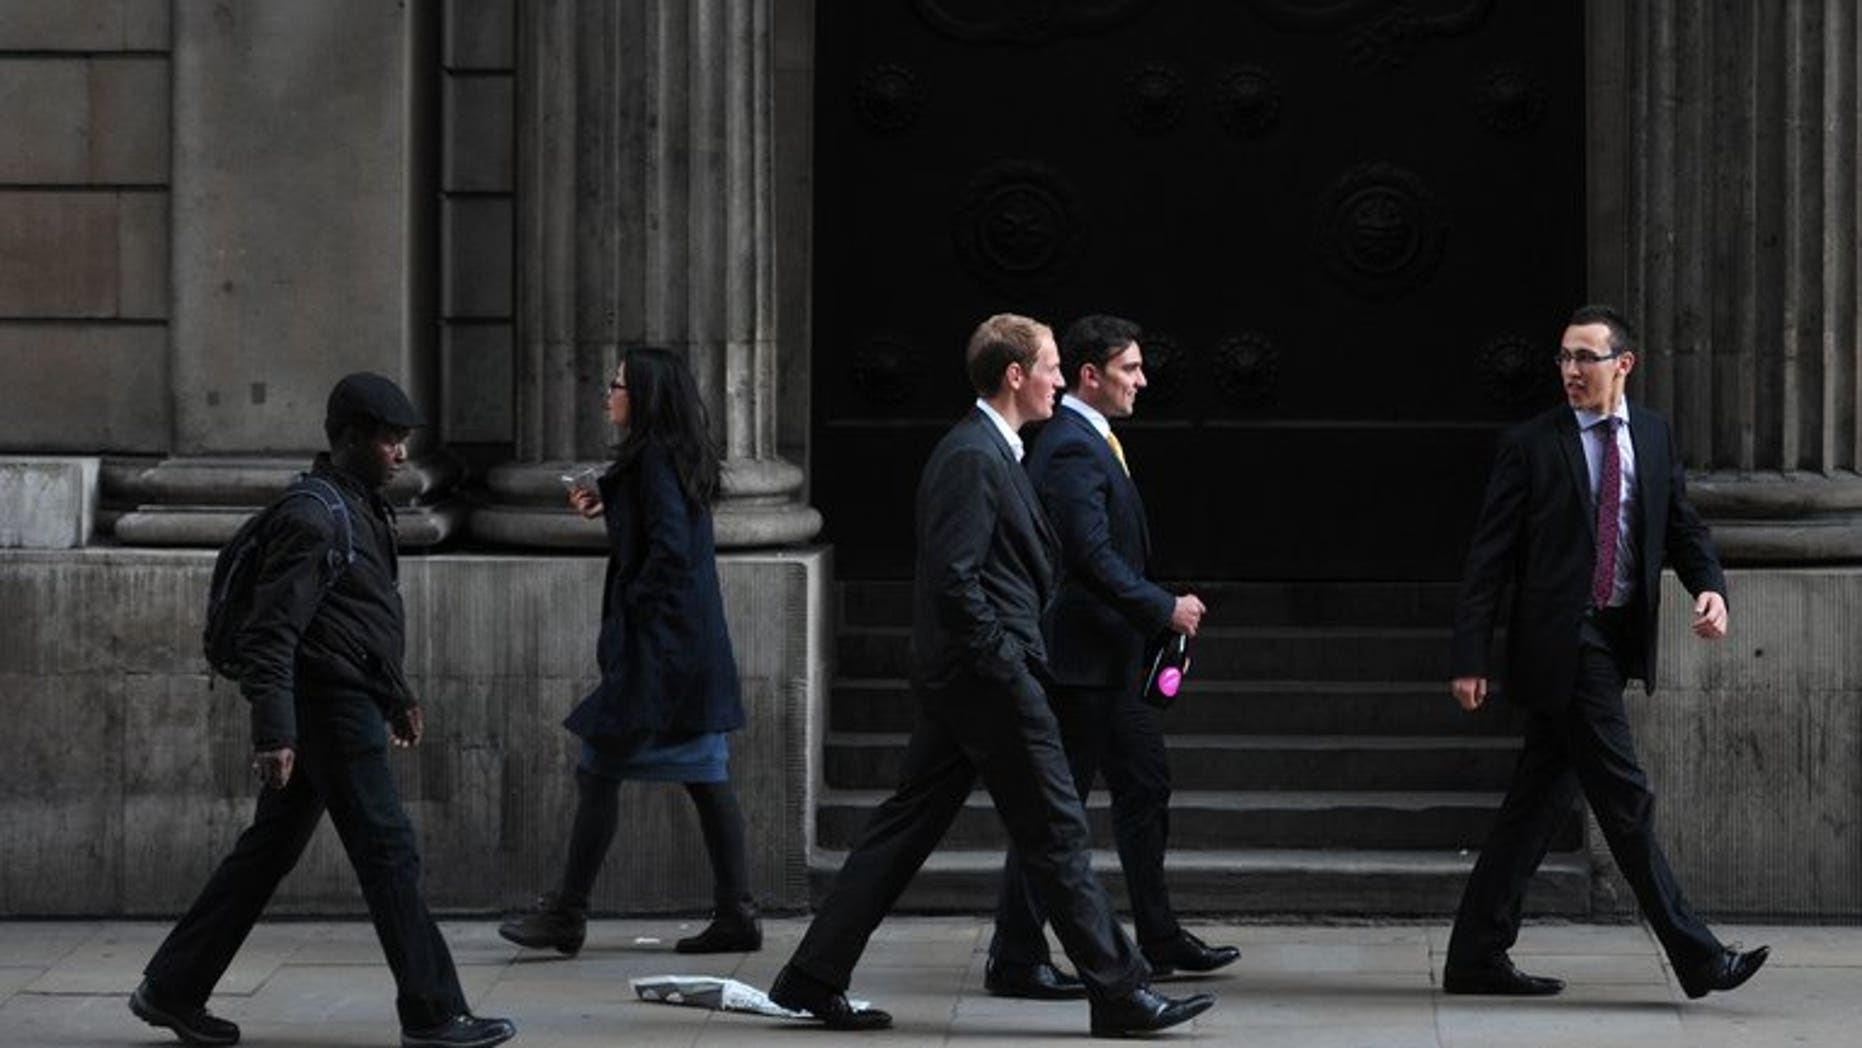 People walk past the Bank of England in the City of London on September 28, 2012. Britain's Serious Fraud Office said Monday that two former brokers have been charged with conspiring to manipulate the Libor interbank lending rate.